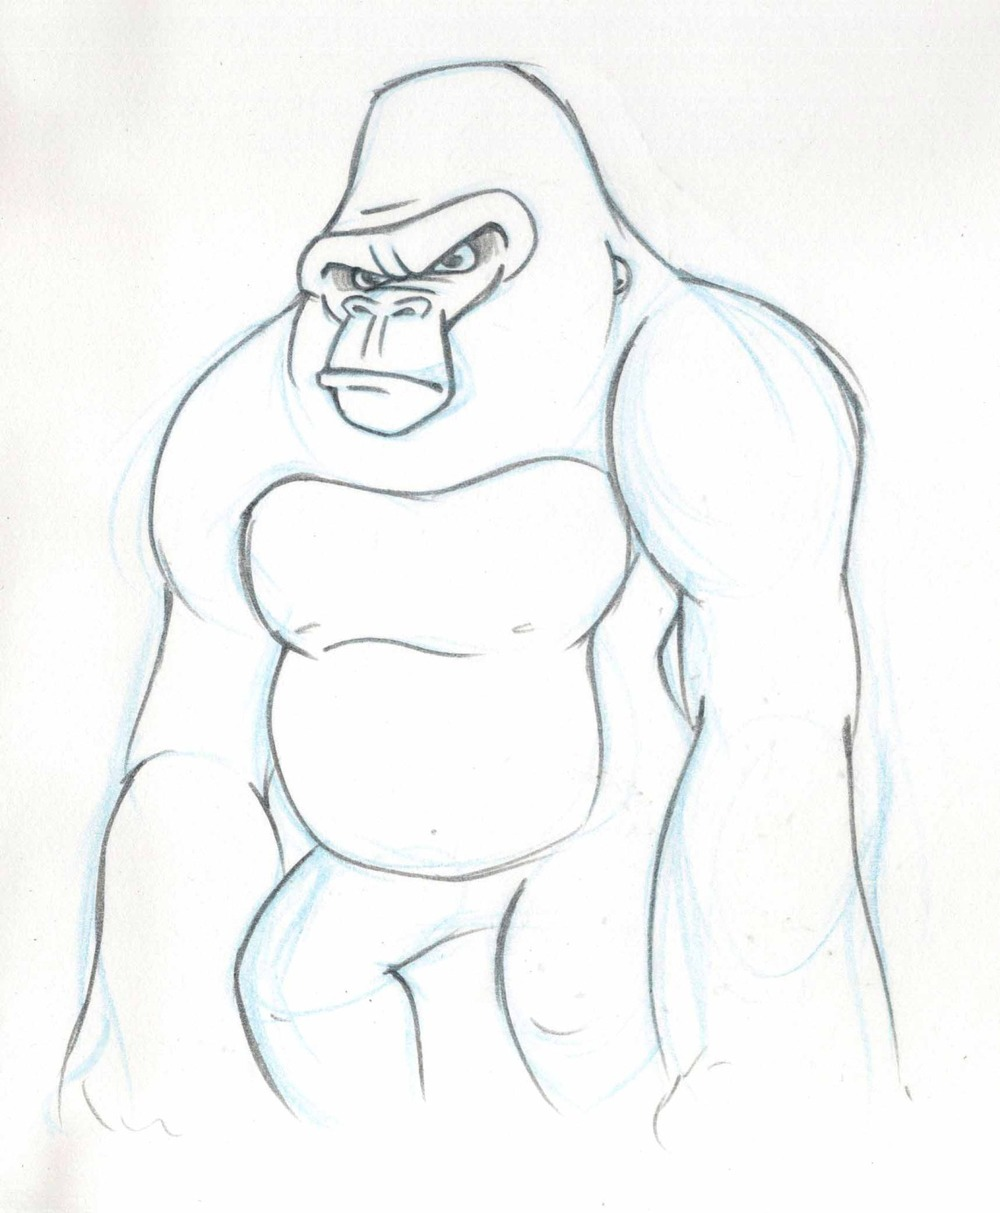 antcreations_gorillatubssketches13.jpg